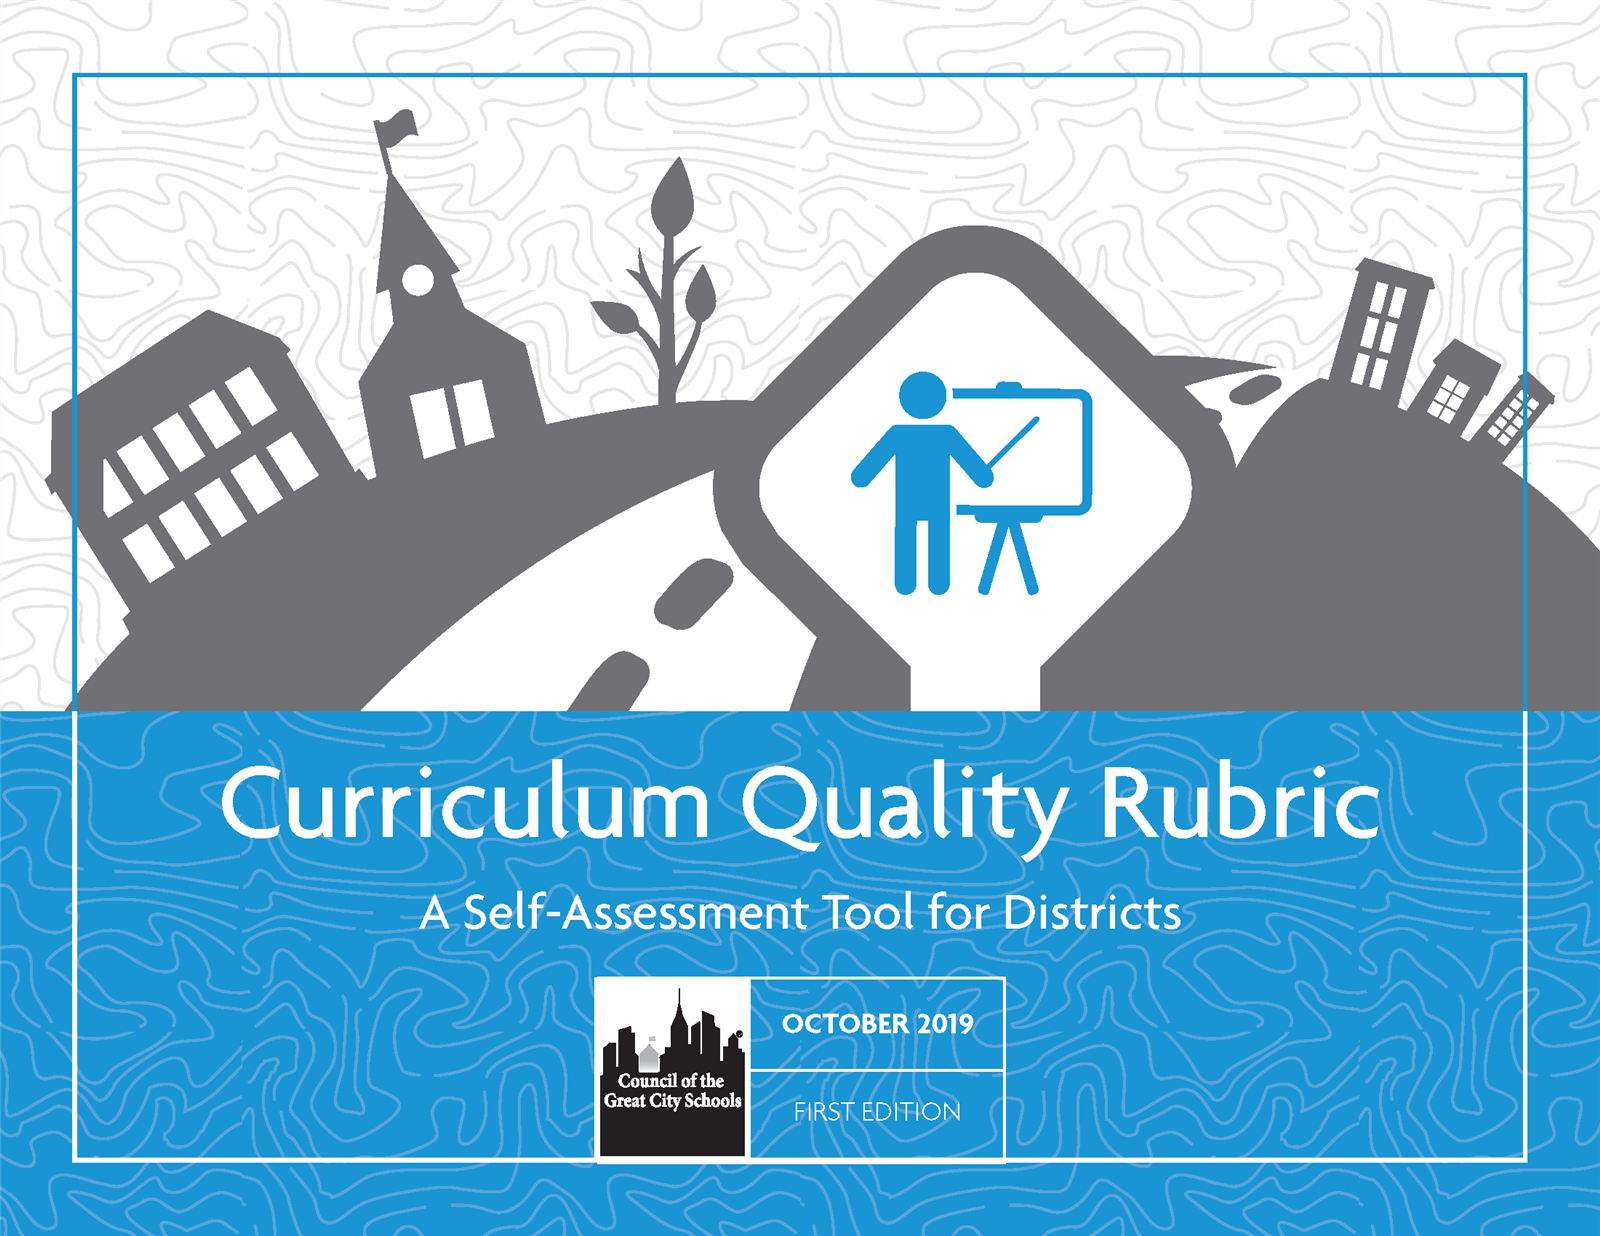 Curriculum Quality Rubric: A Self-Assessment Tools for Districts